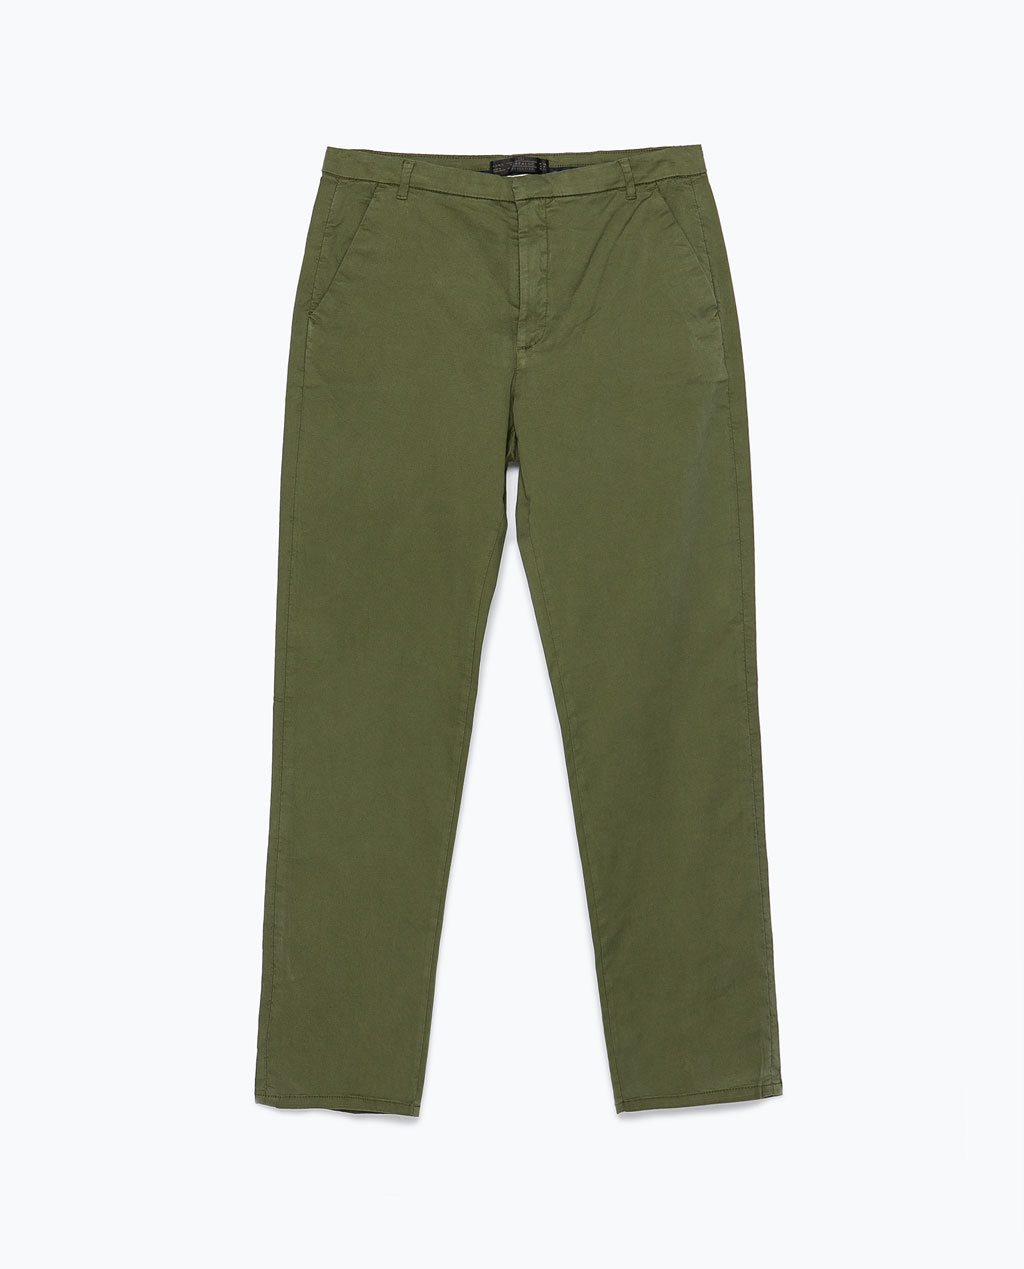 Straight Cut Trousers - pattern: plain; waist: mid/regular rise; predominant colour: khaki; occasions: casual, creative work; length: calf length; fit: straight leg; pattern type: fabric; texture group: woven light midweight; style: standard; season: s/s 2015; wardrobe: basic